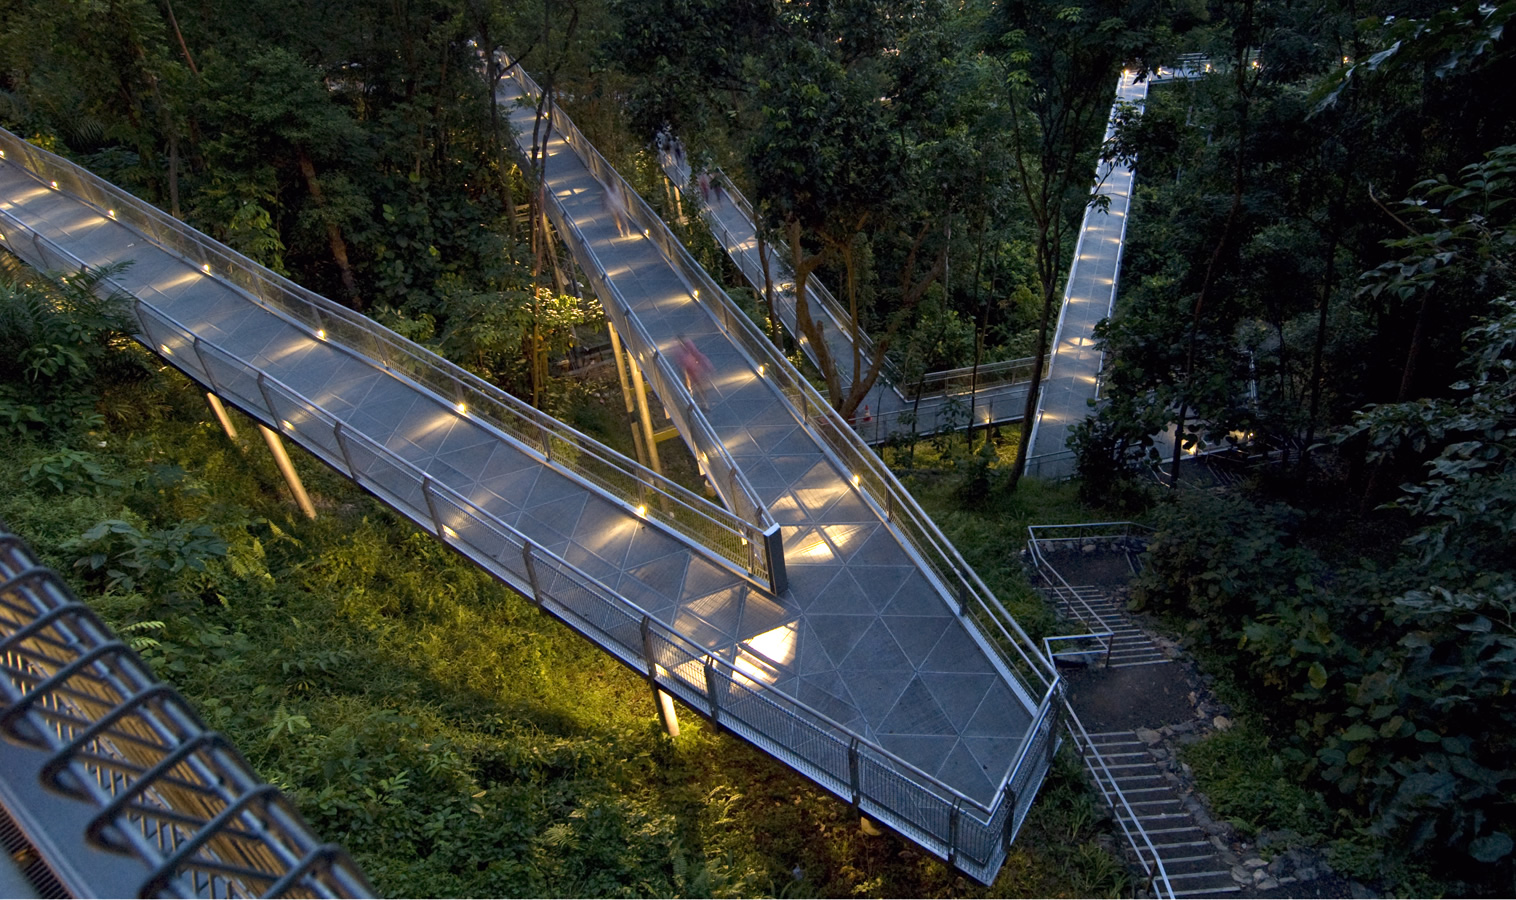 Elevated forest walkway in Telok Blangah Hill Park at night